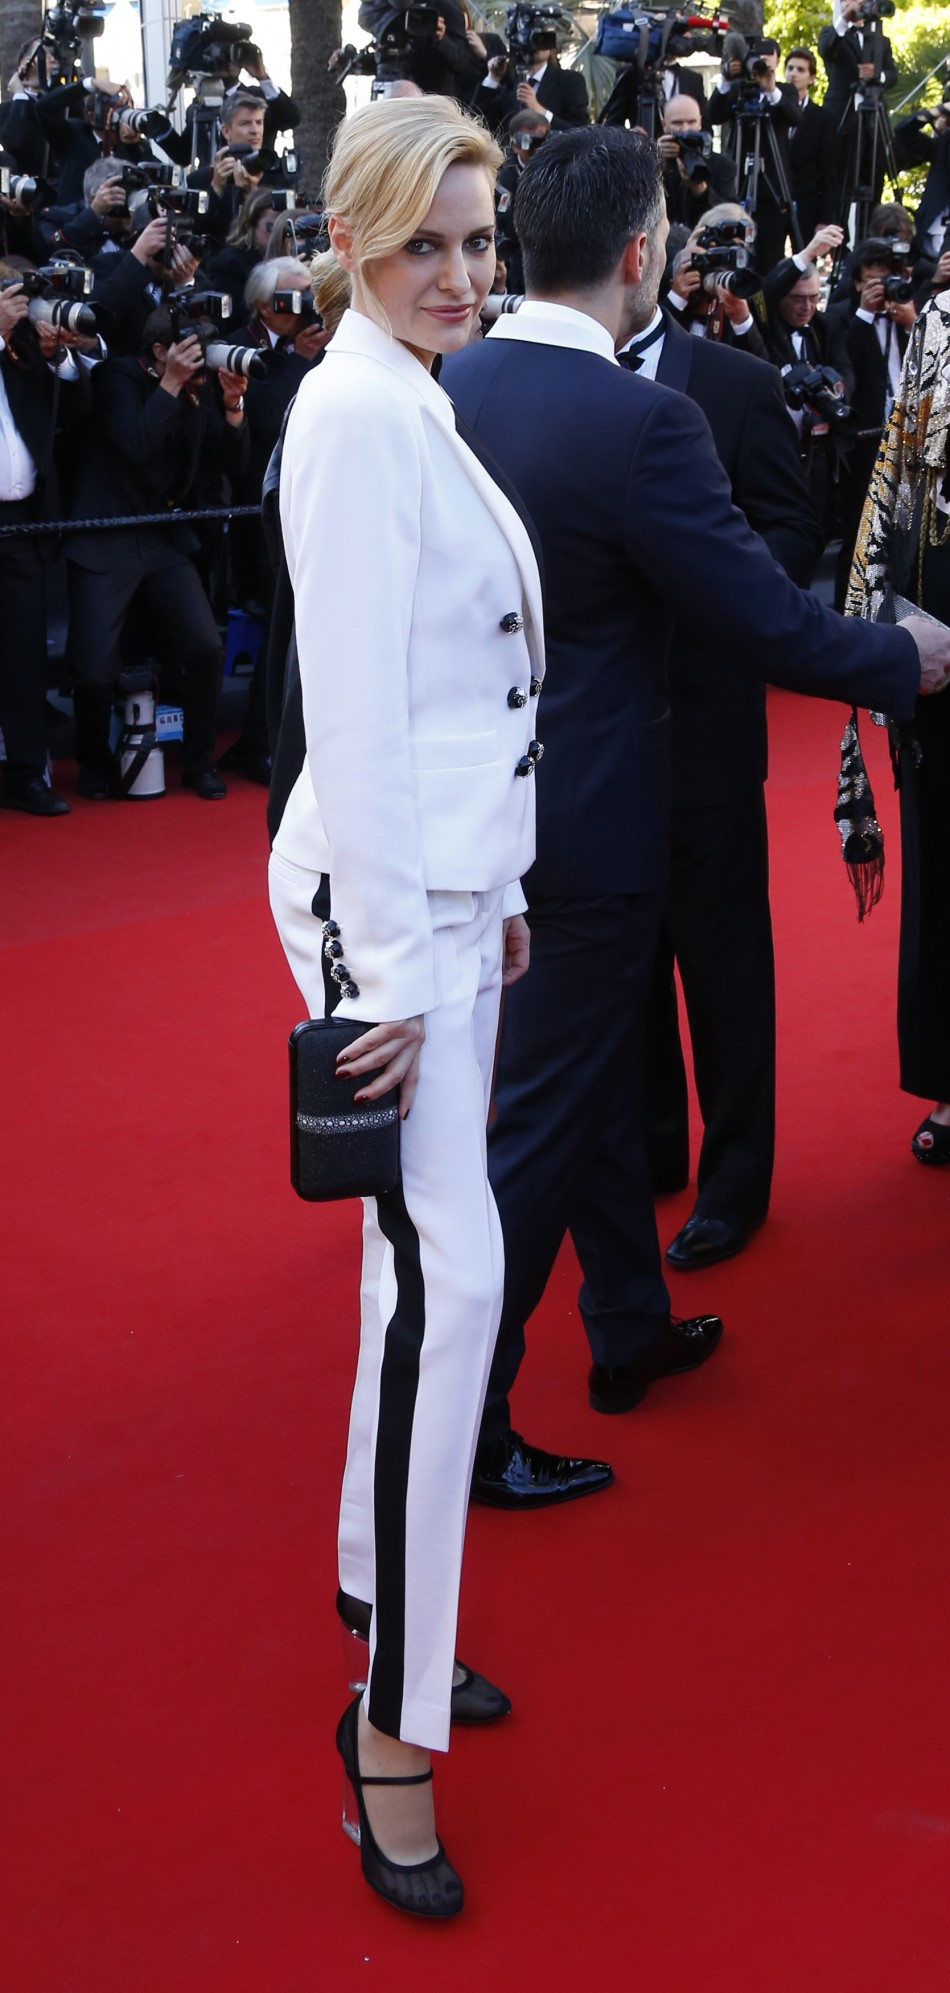 U.S. athlete, actress and fashion model Aimee Mullins poses on the red carpet as she arrives for the screening of the film 'Le Passe' (The Past) in competition during the 66th Cannes Film Festival in Cannes May 17, 2013